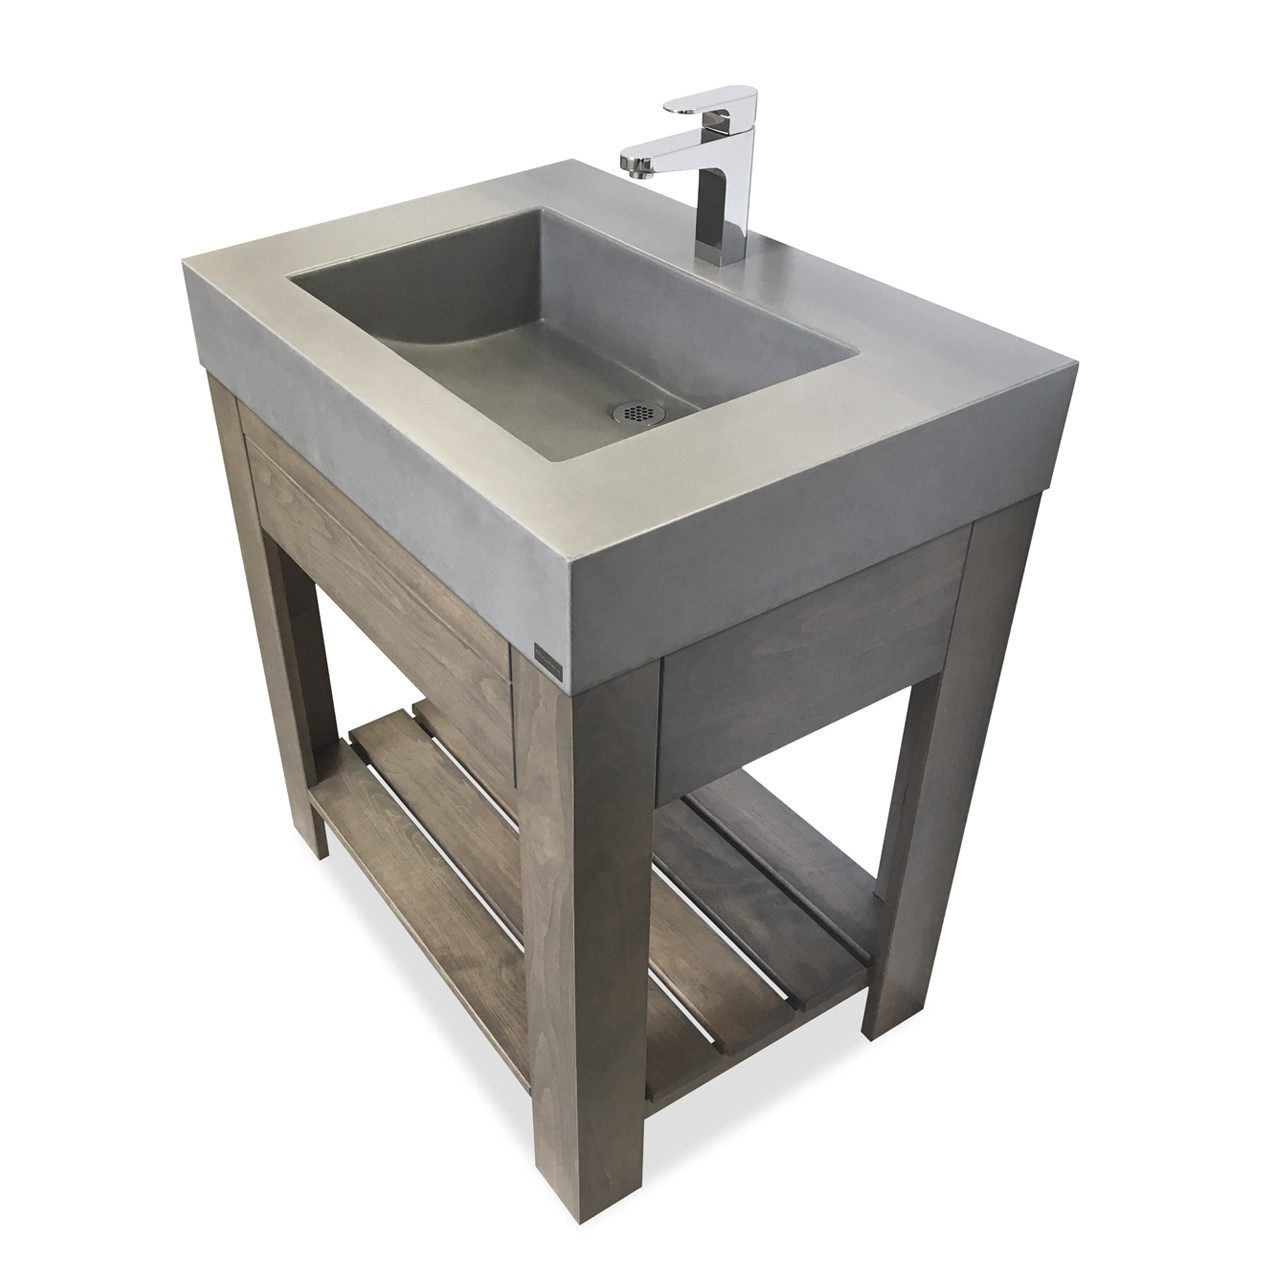 Excellent 30 Lavare Vanity With Concrete Half Trough Sink Drawer Download Free Architecture Designs Scobabritishbridgeorg